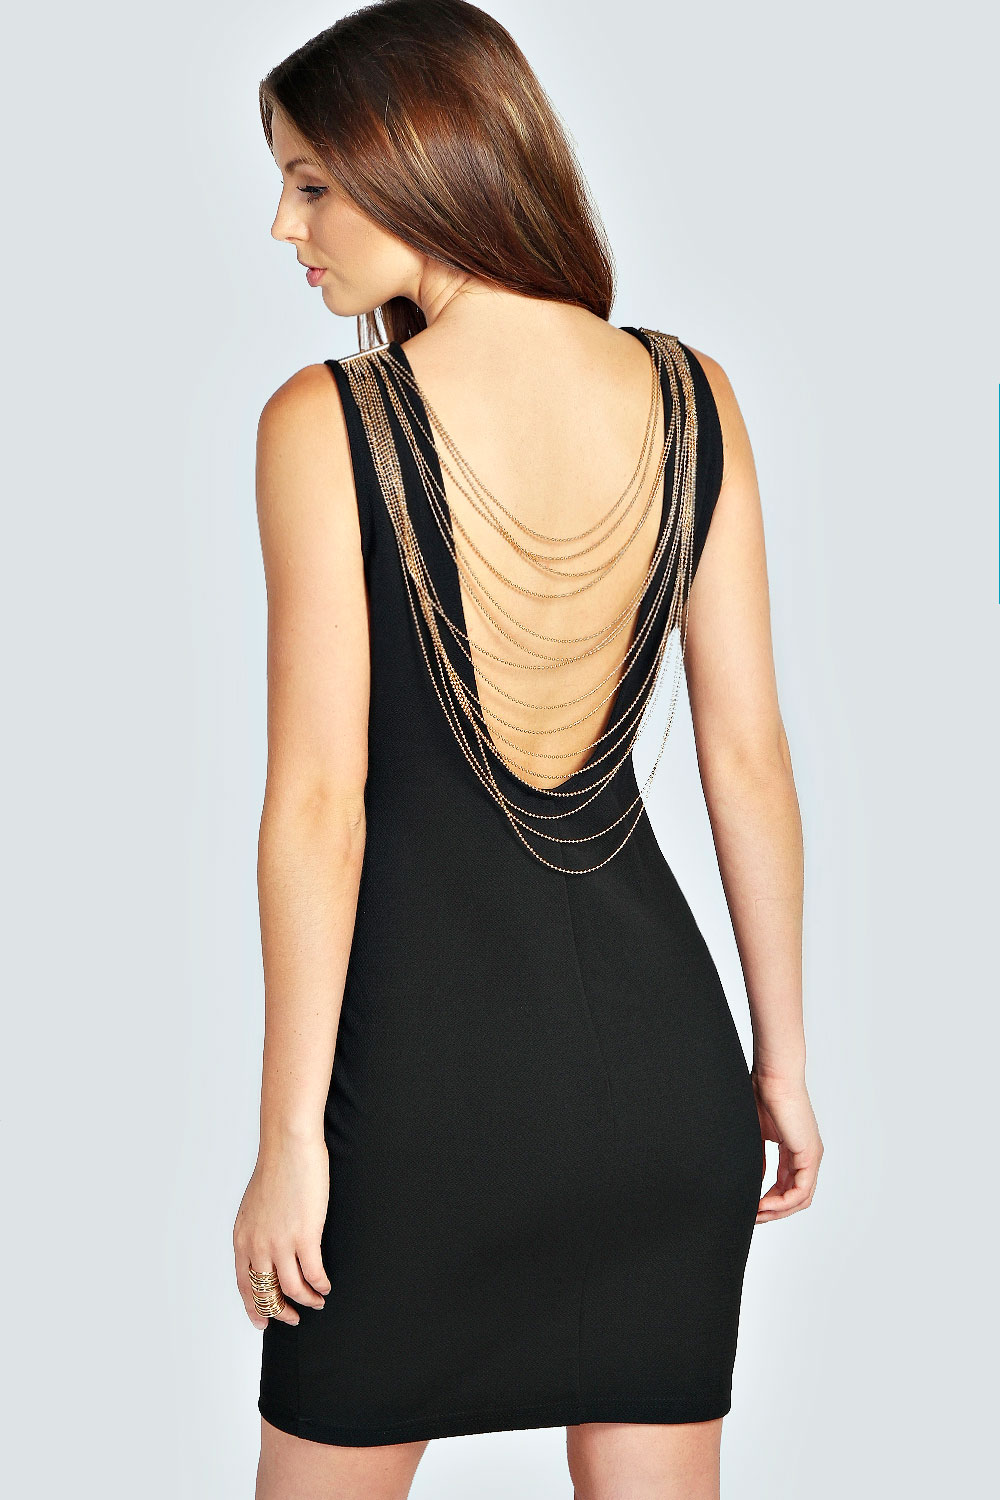 Larna Chain Draped Back Bodycon Dress